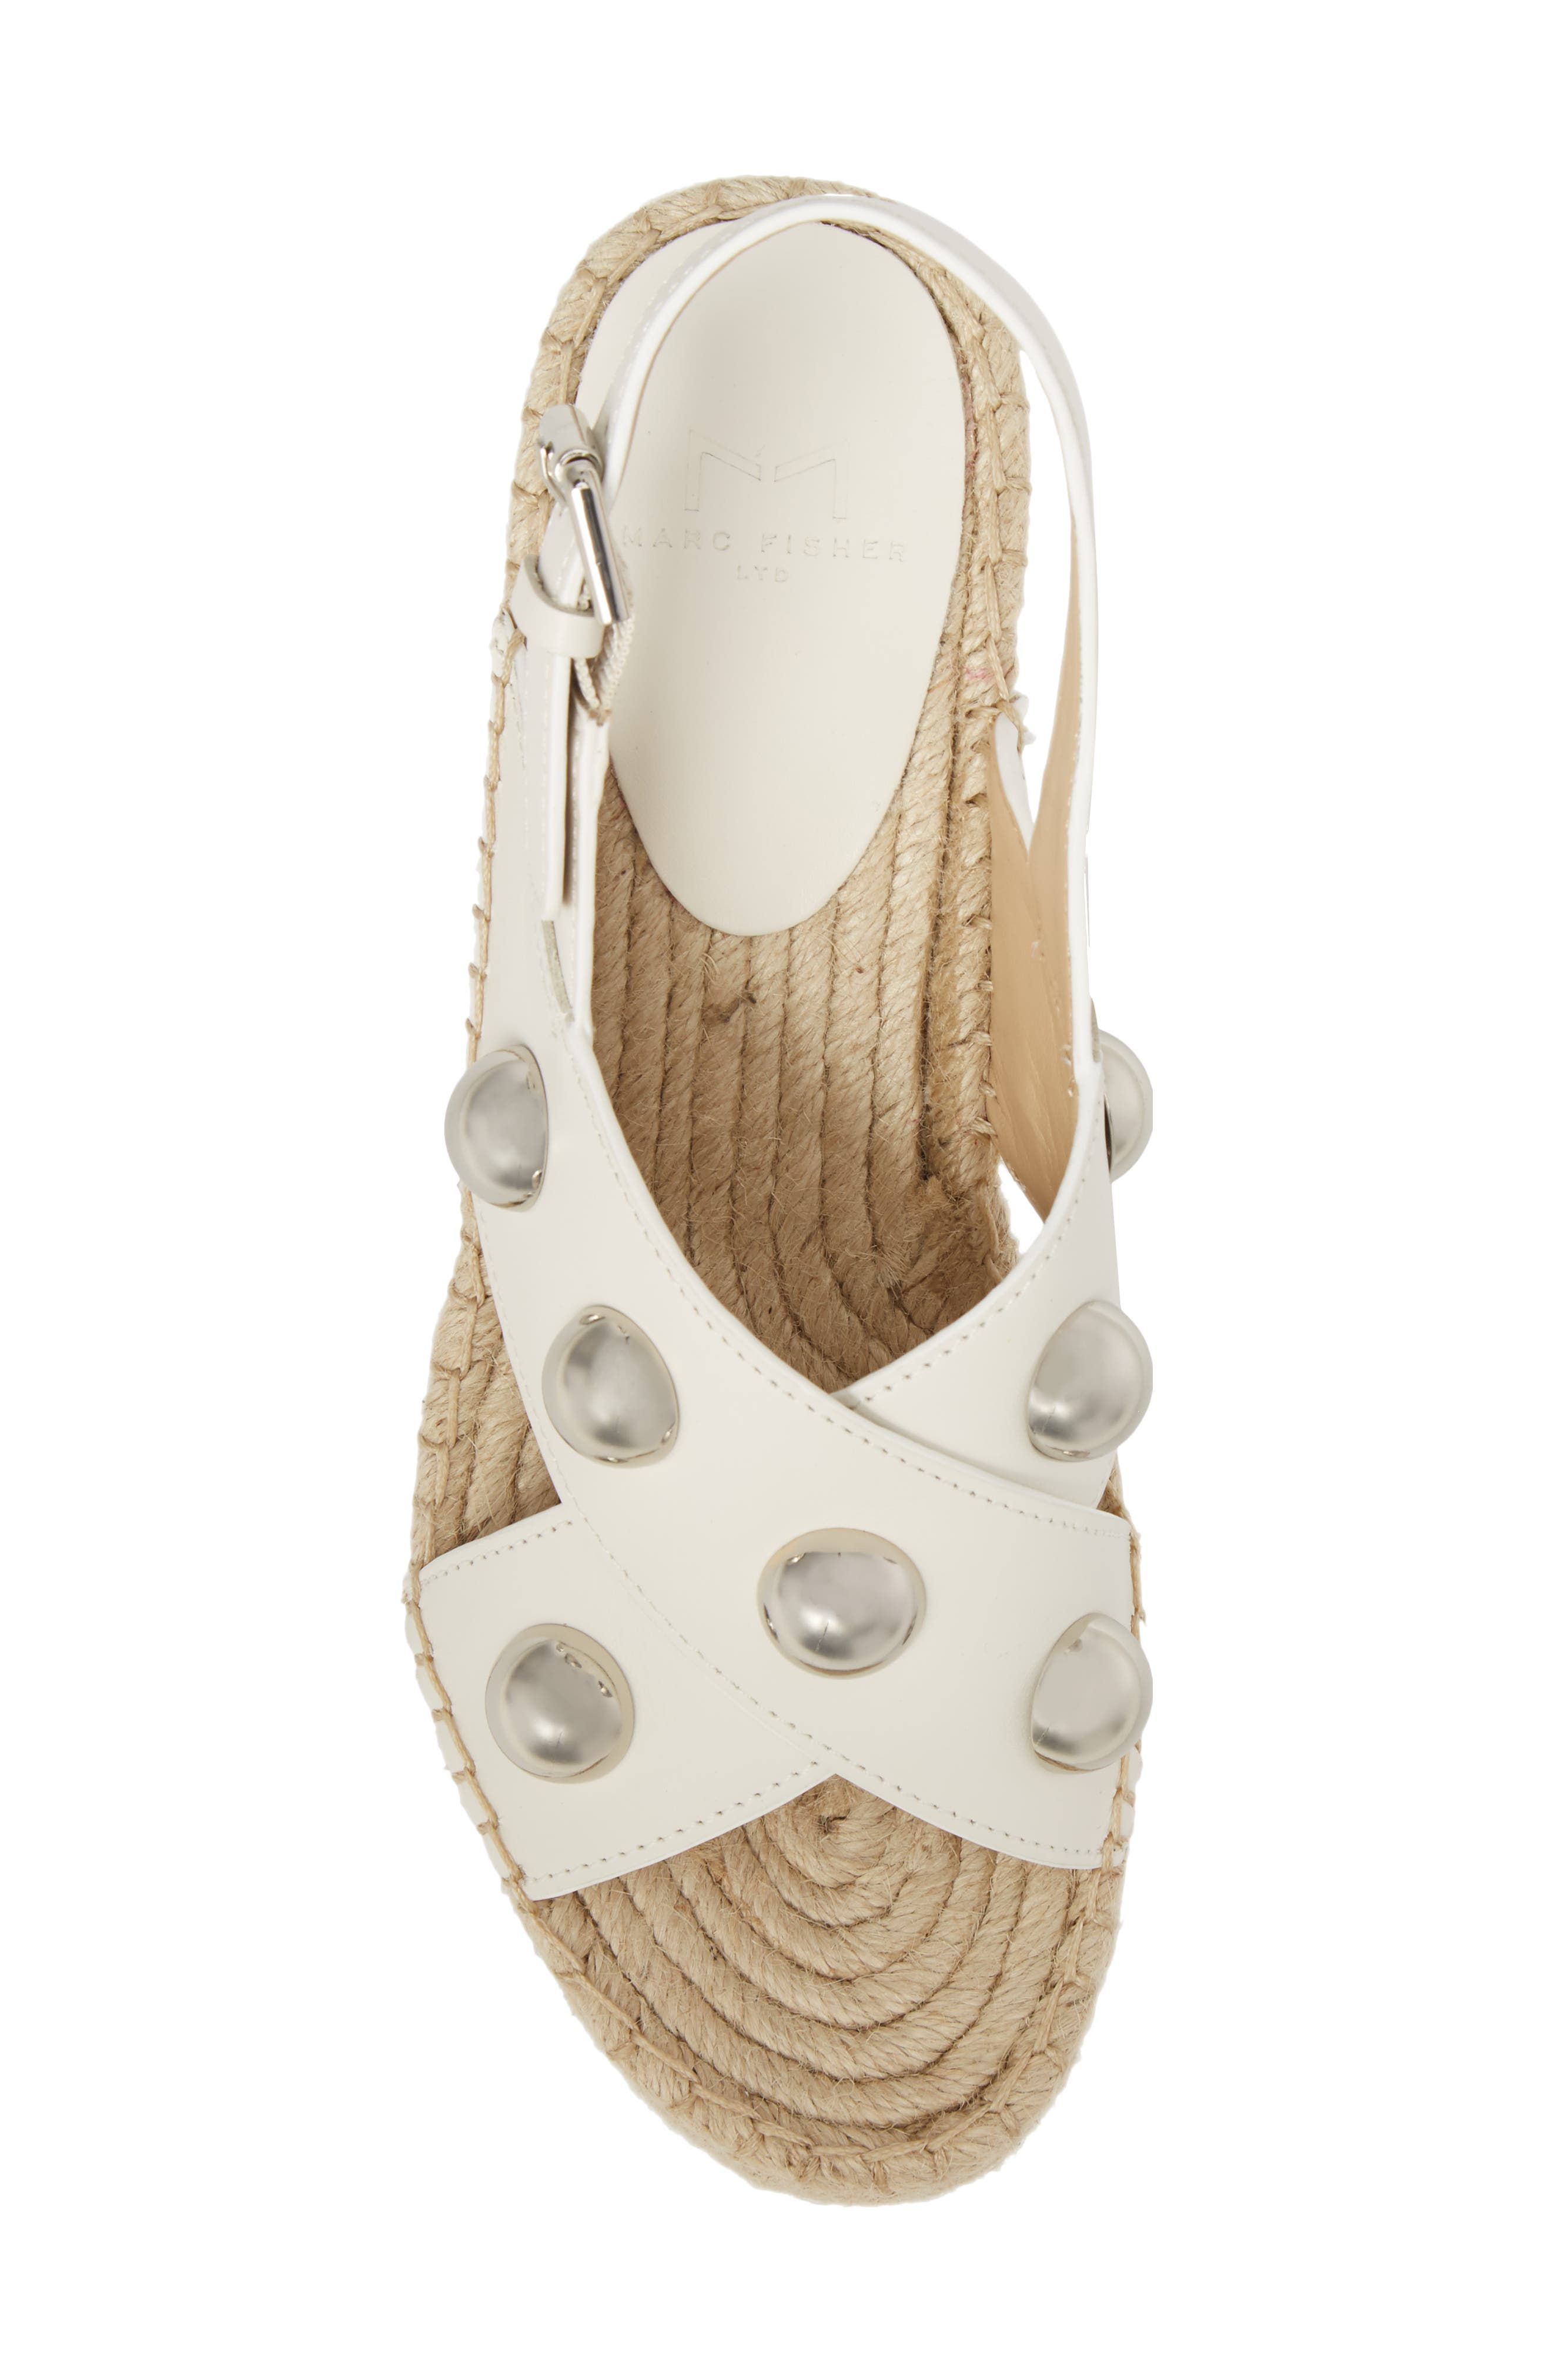 Rella Espadrille Platform Sandal,                             Alternate thumbnail 5, color,                             Ivory Leather